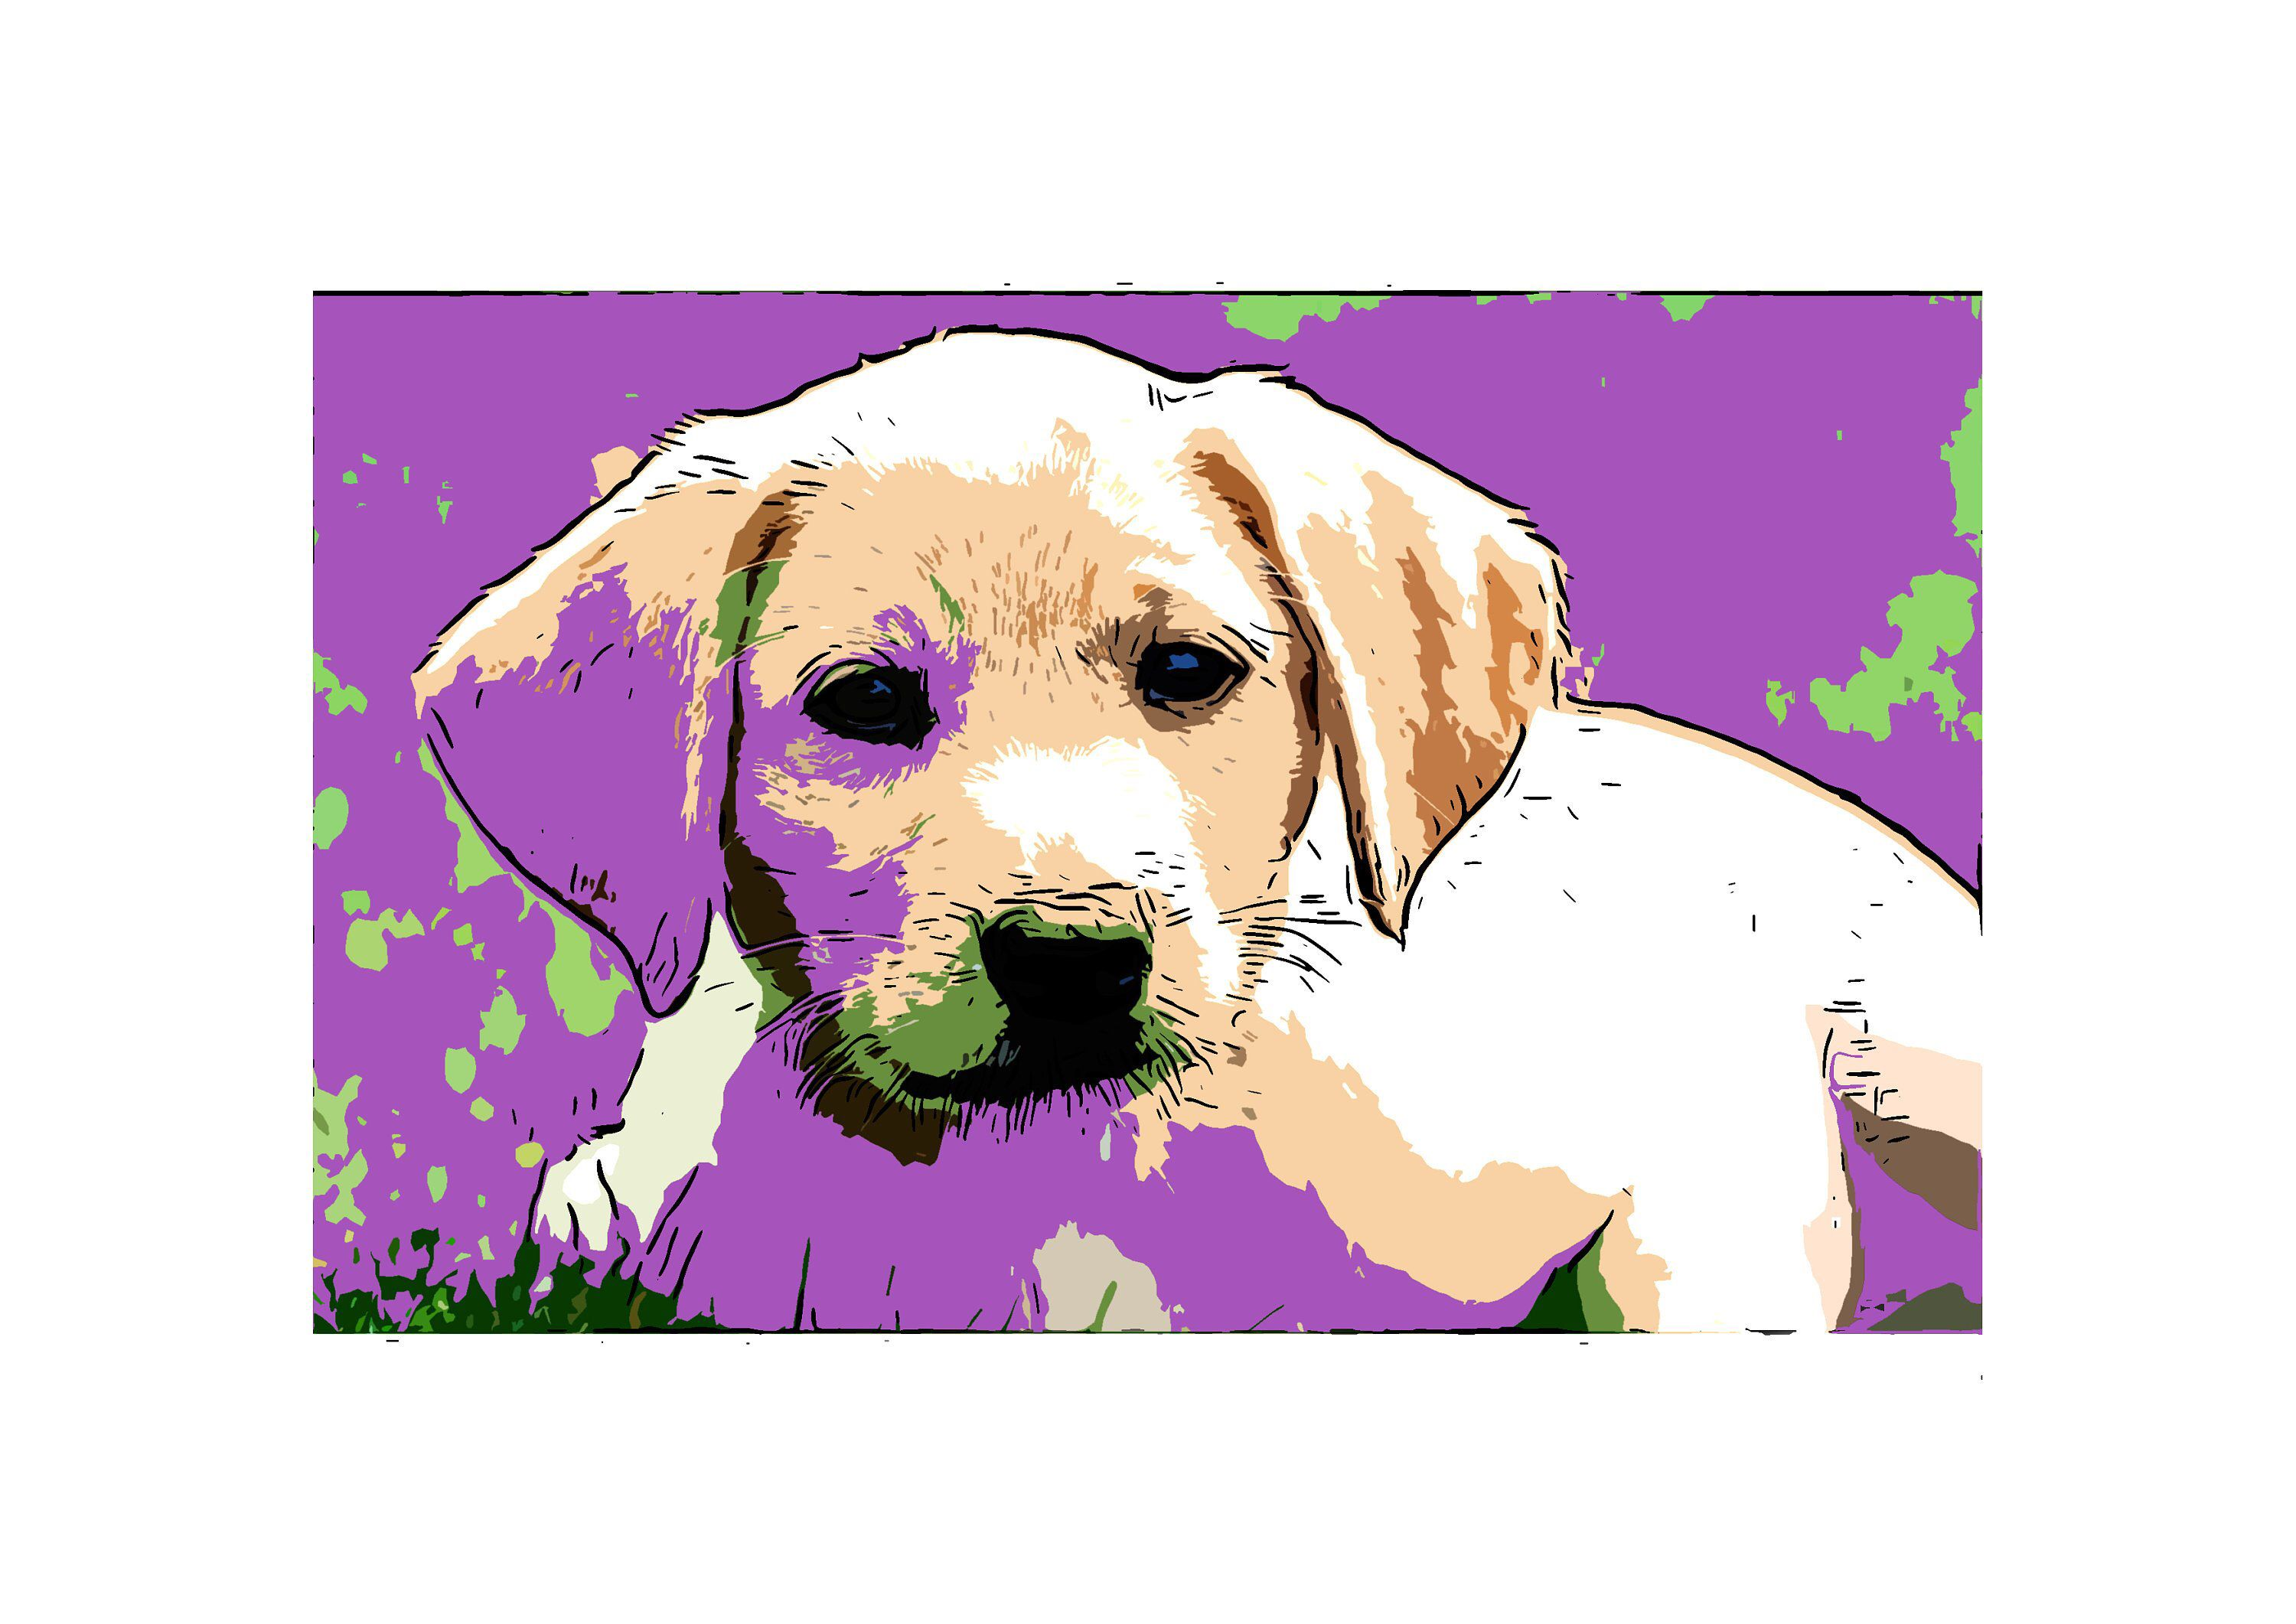 Cute Puppy Art Graphic Download Art Budget Art Purple Background Designed For Letter And A4 Paper Budget Budget Art Dog Art Digital Graphic Design